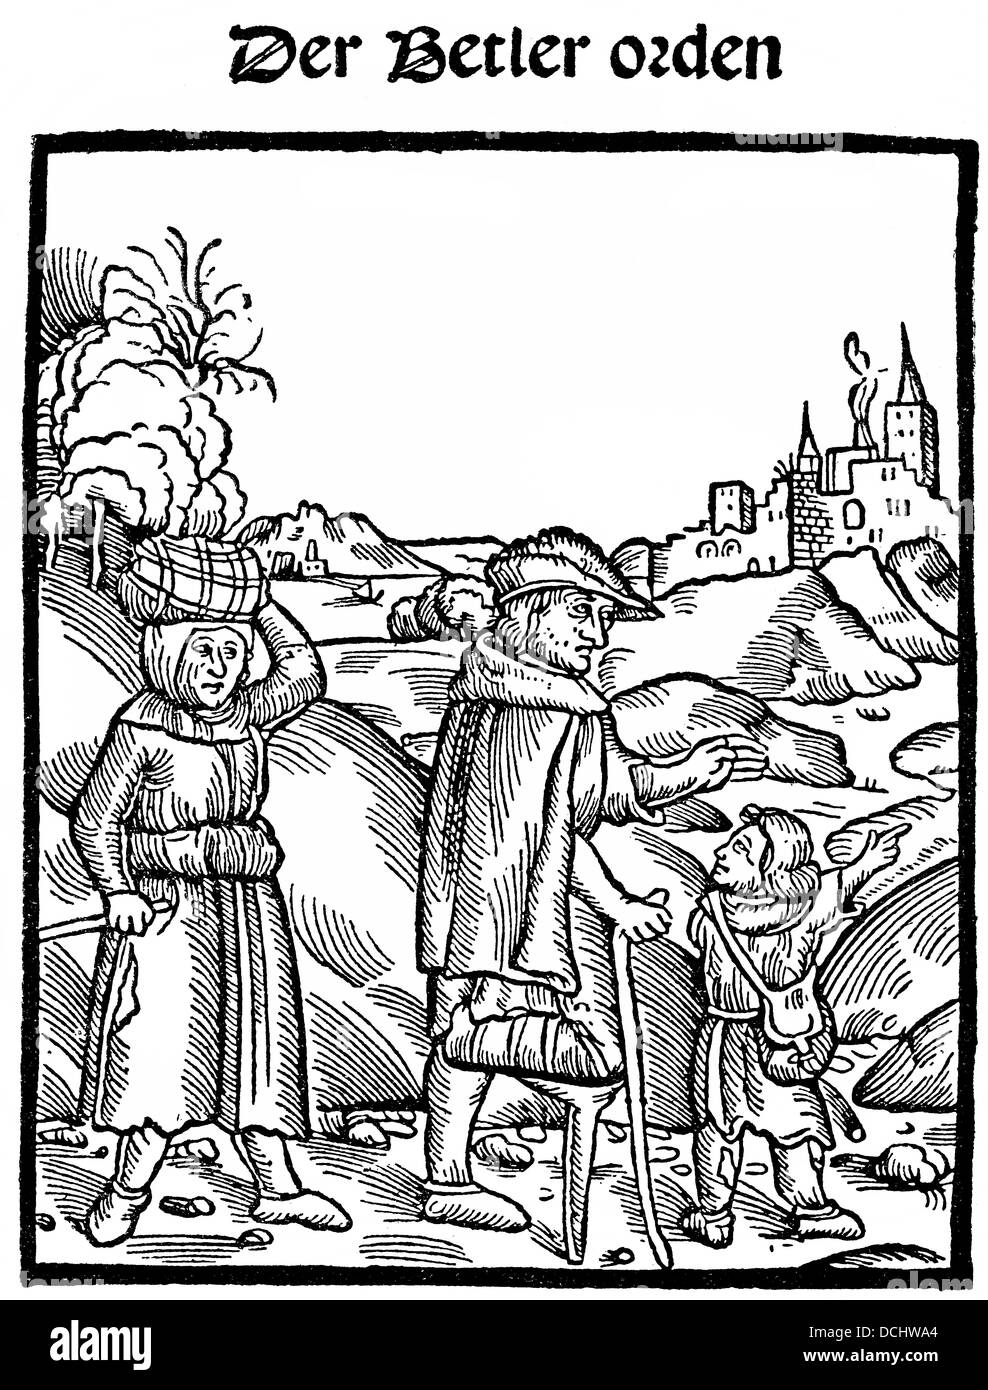 Title of a book from 1500, warning of beggars - Stock Image